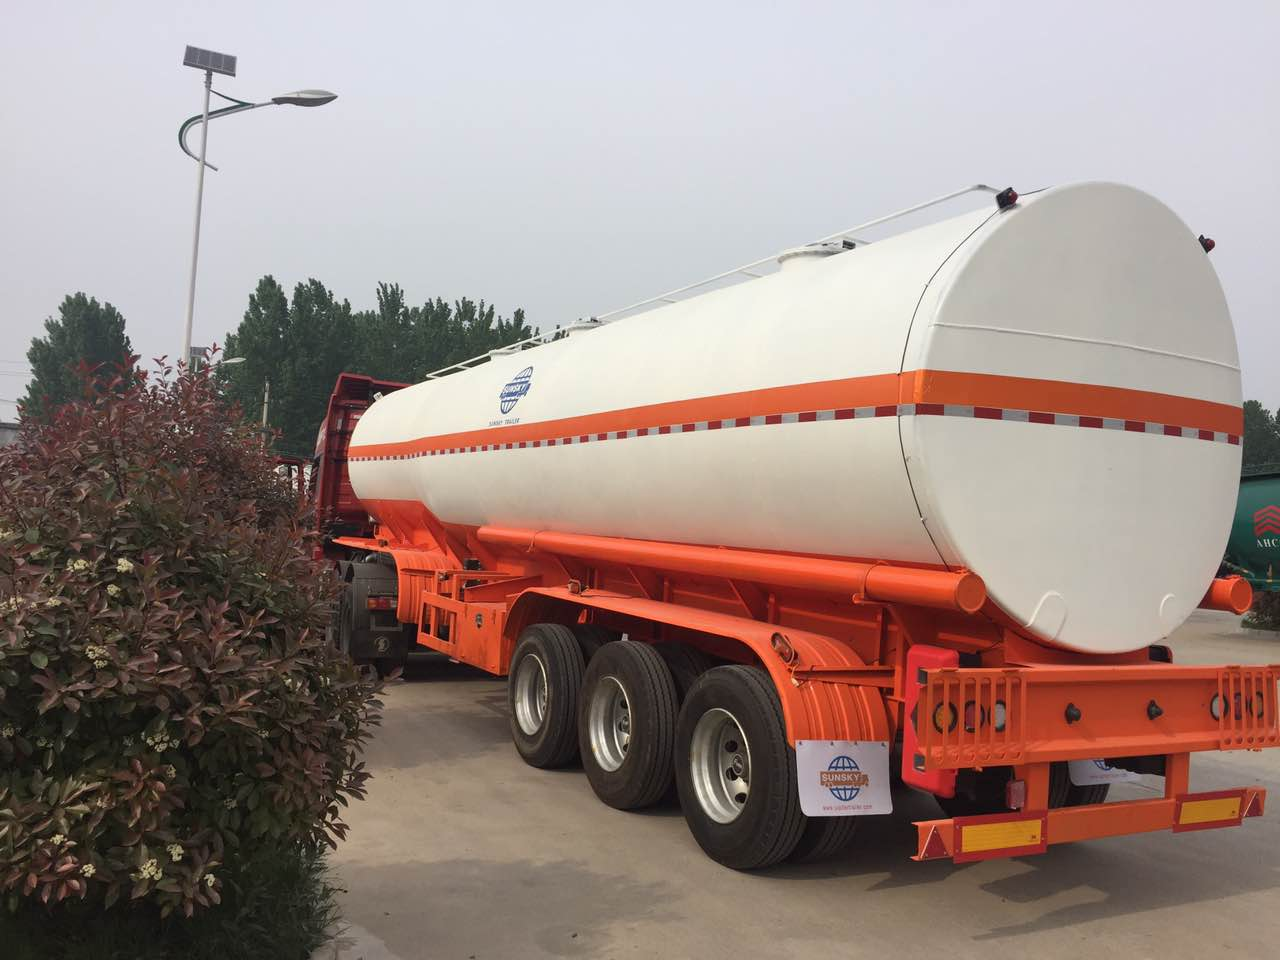 20units of sunsky brand new fuel tanker trailers are shipped to Mozambique